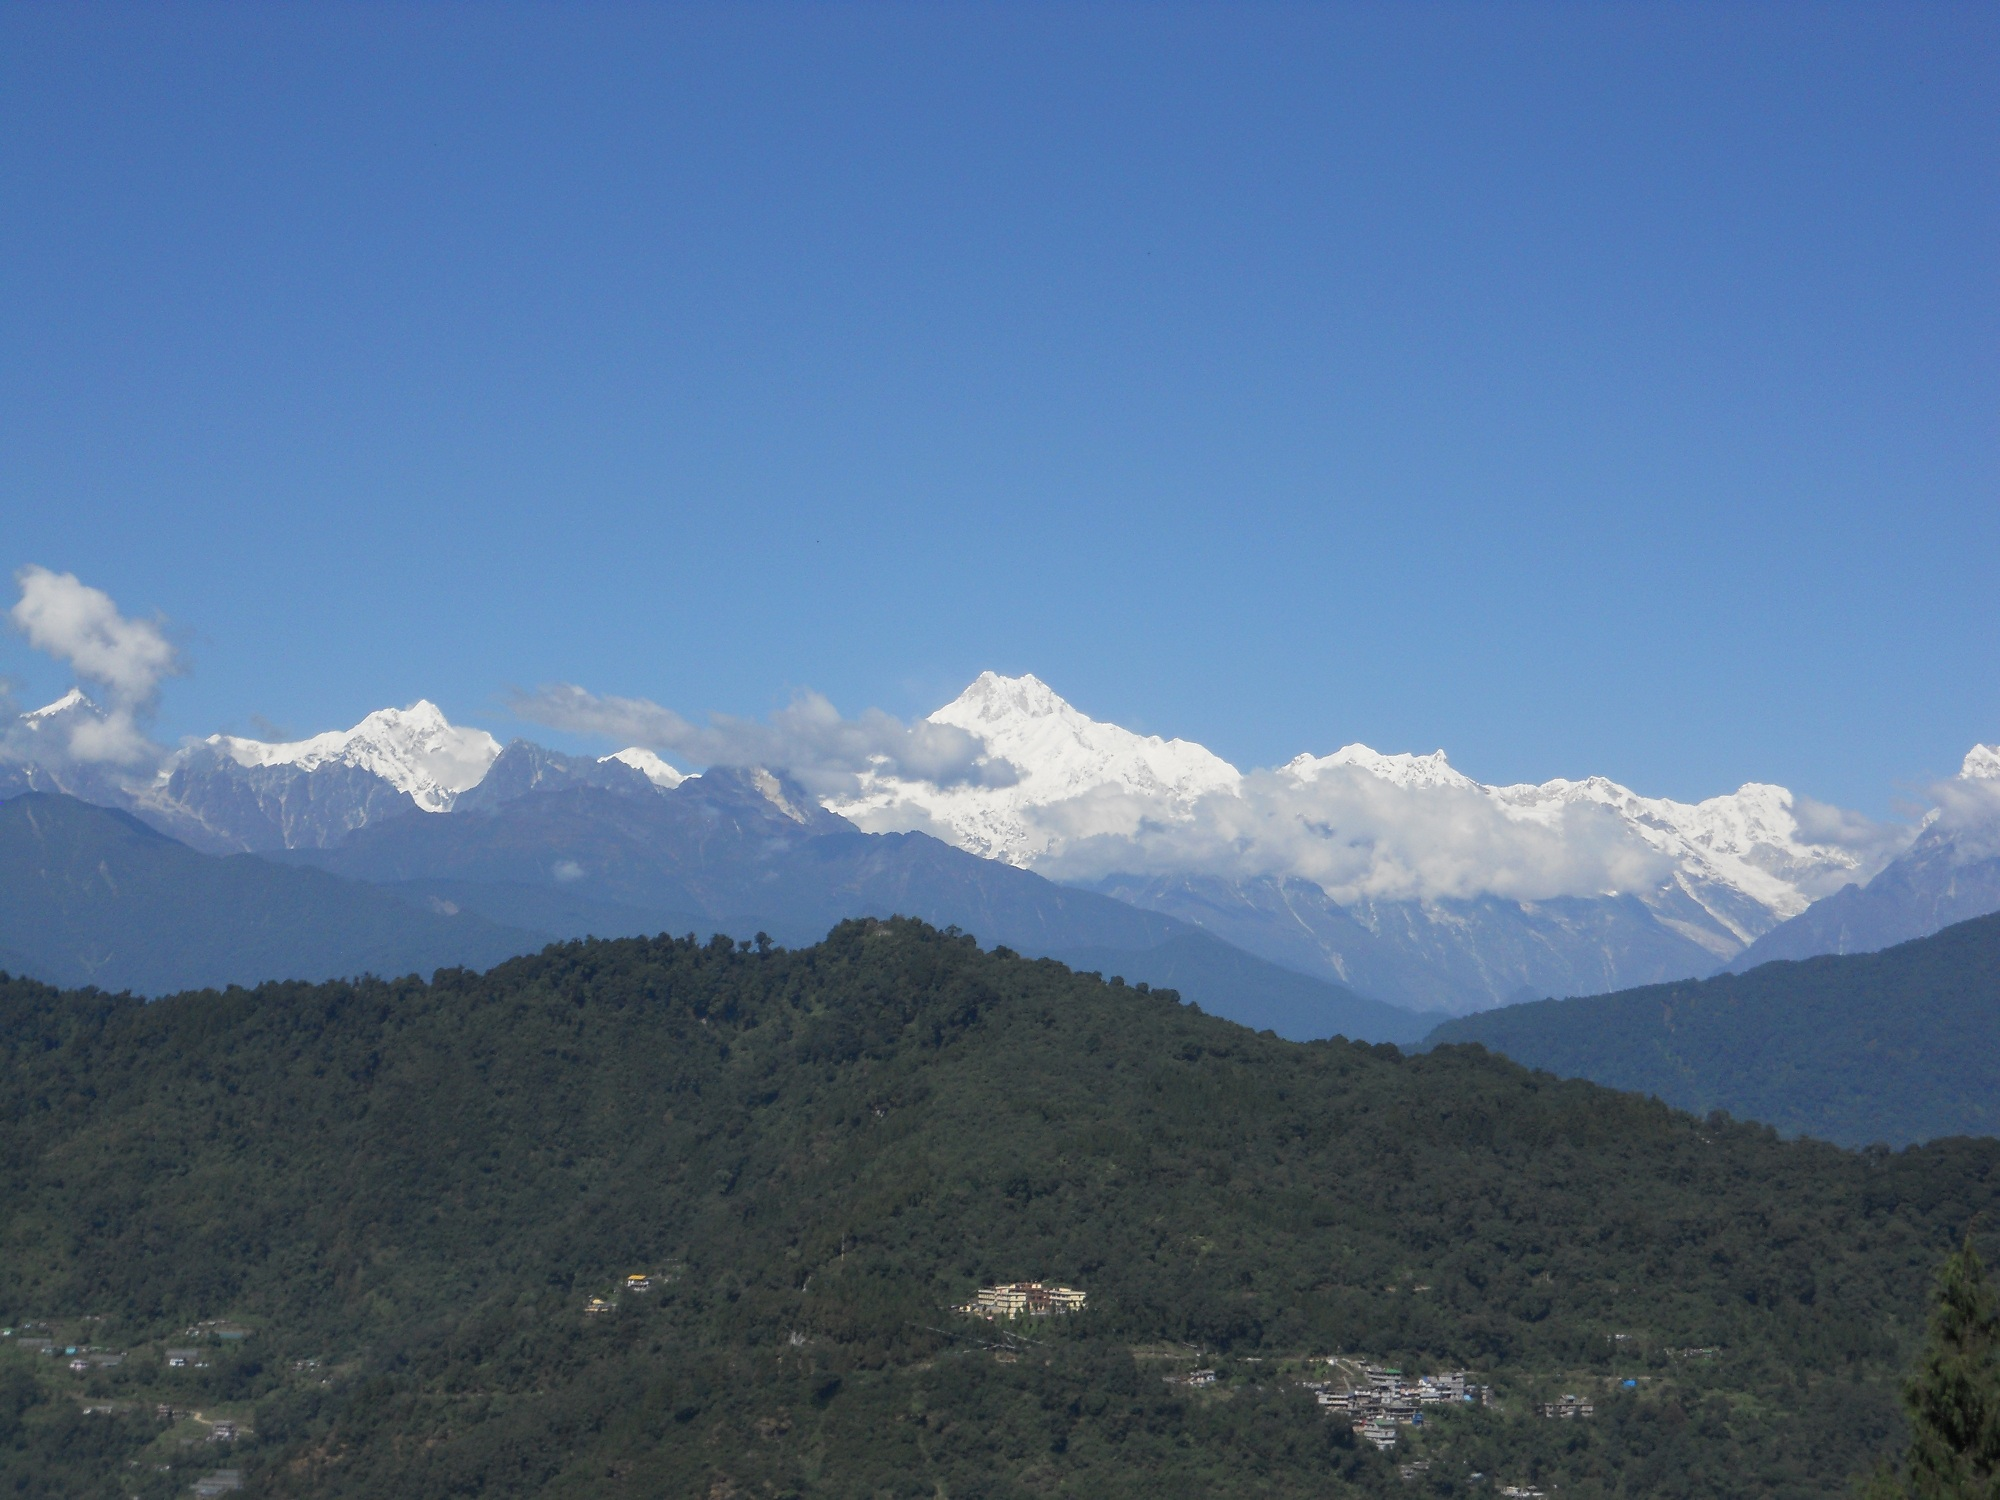 KACNCHANJANGHA VIEW FROM GANGTOK